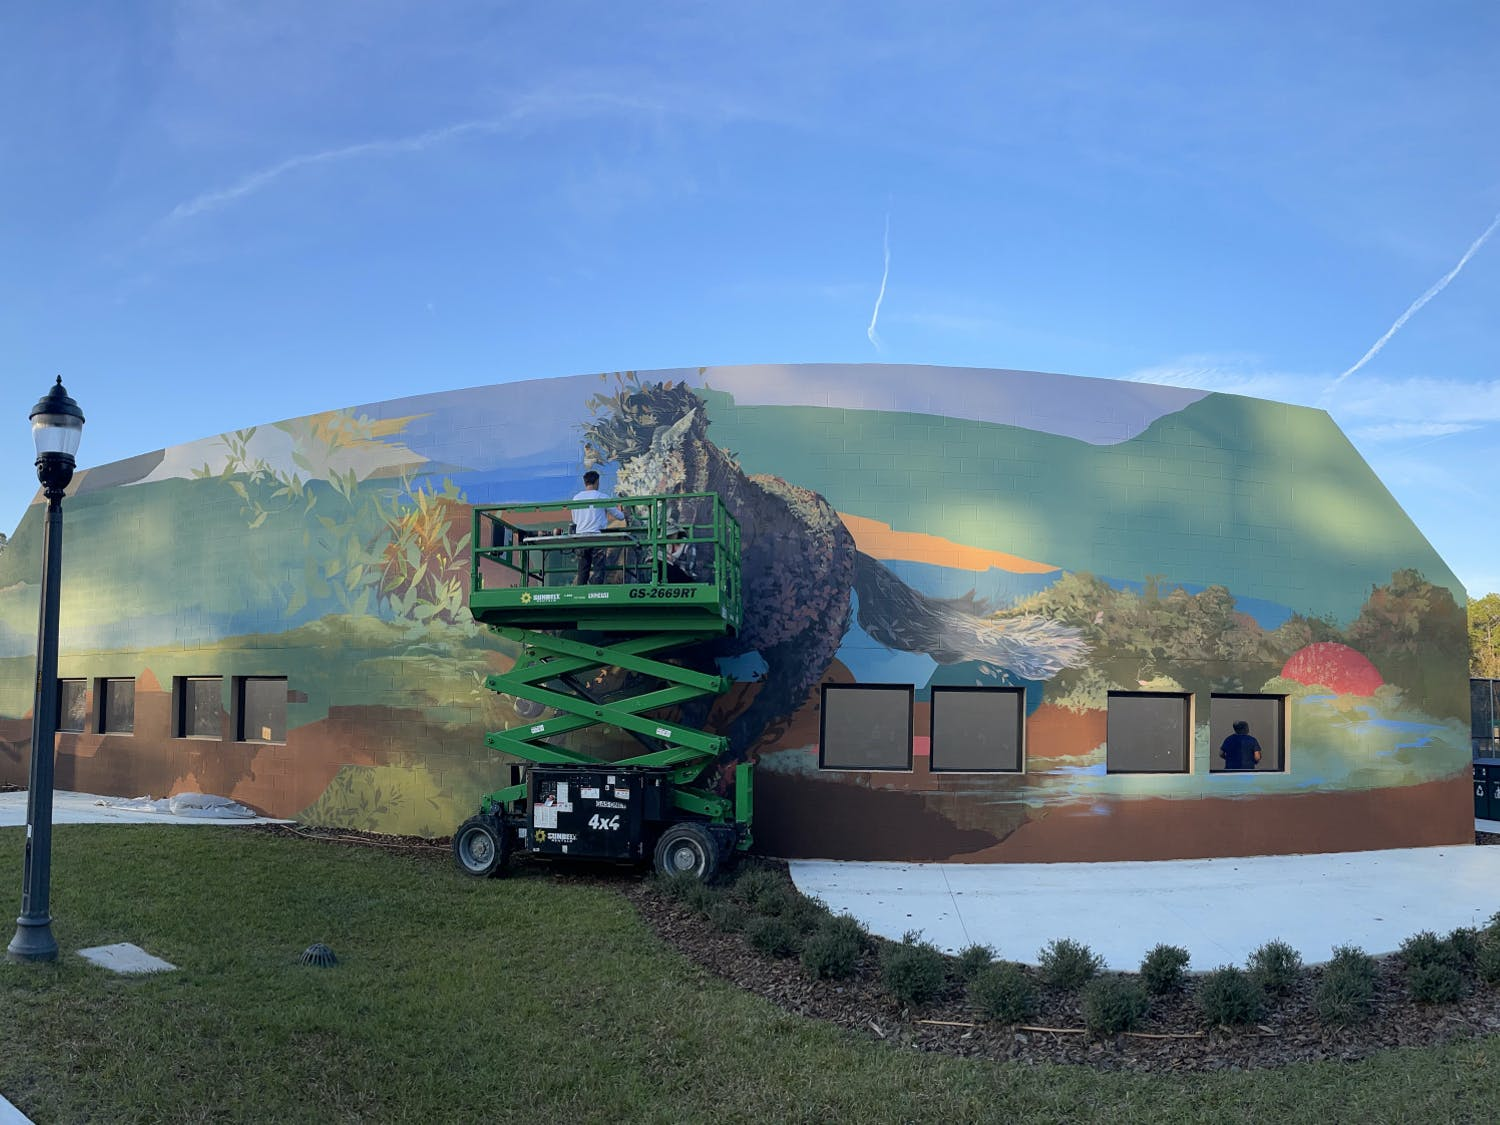 The mural took Ernesto Maranje about one week to complete.